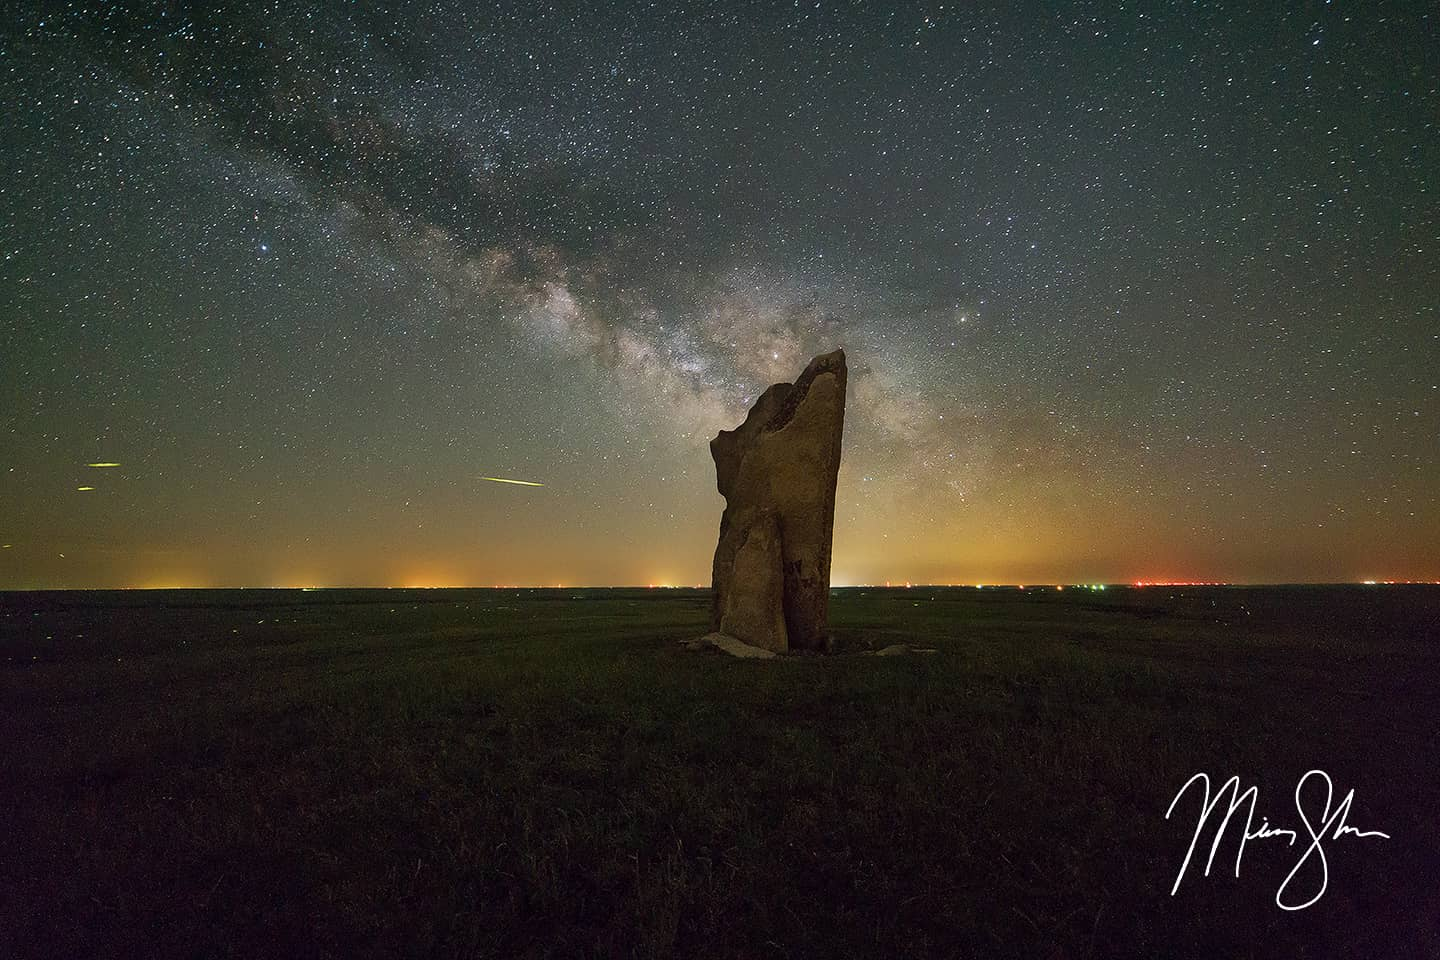 Open edition fine art print of Teter Rock Firefly Milky Way from Mickey Shannon Photography. Location: Teter Rock, Flint Hills, Kansas